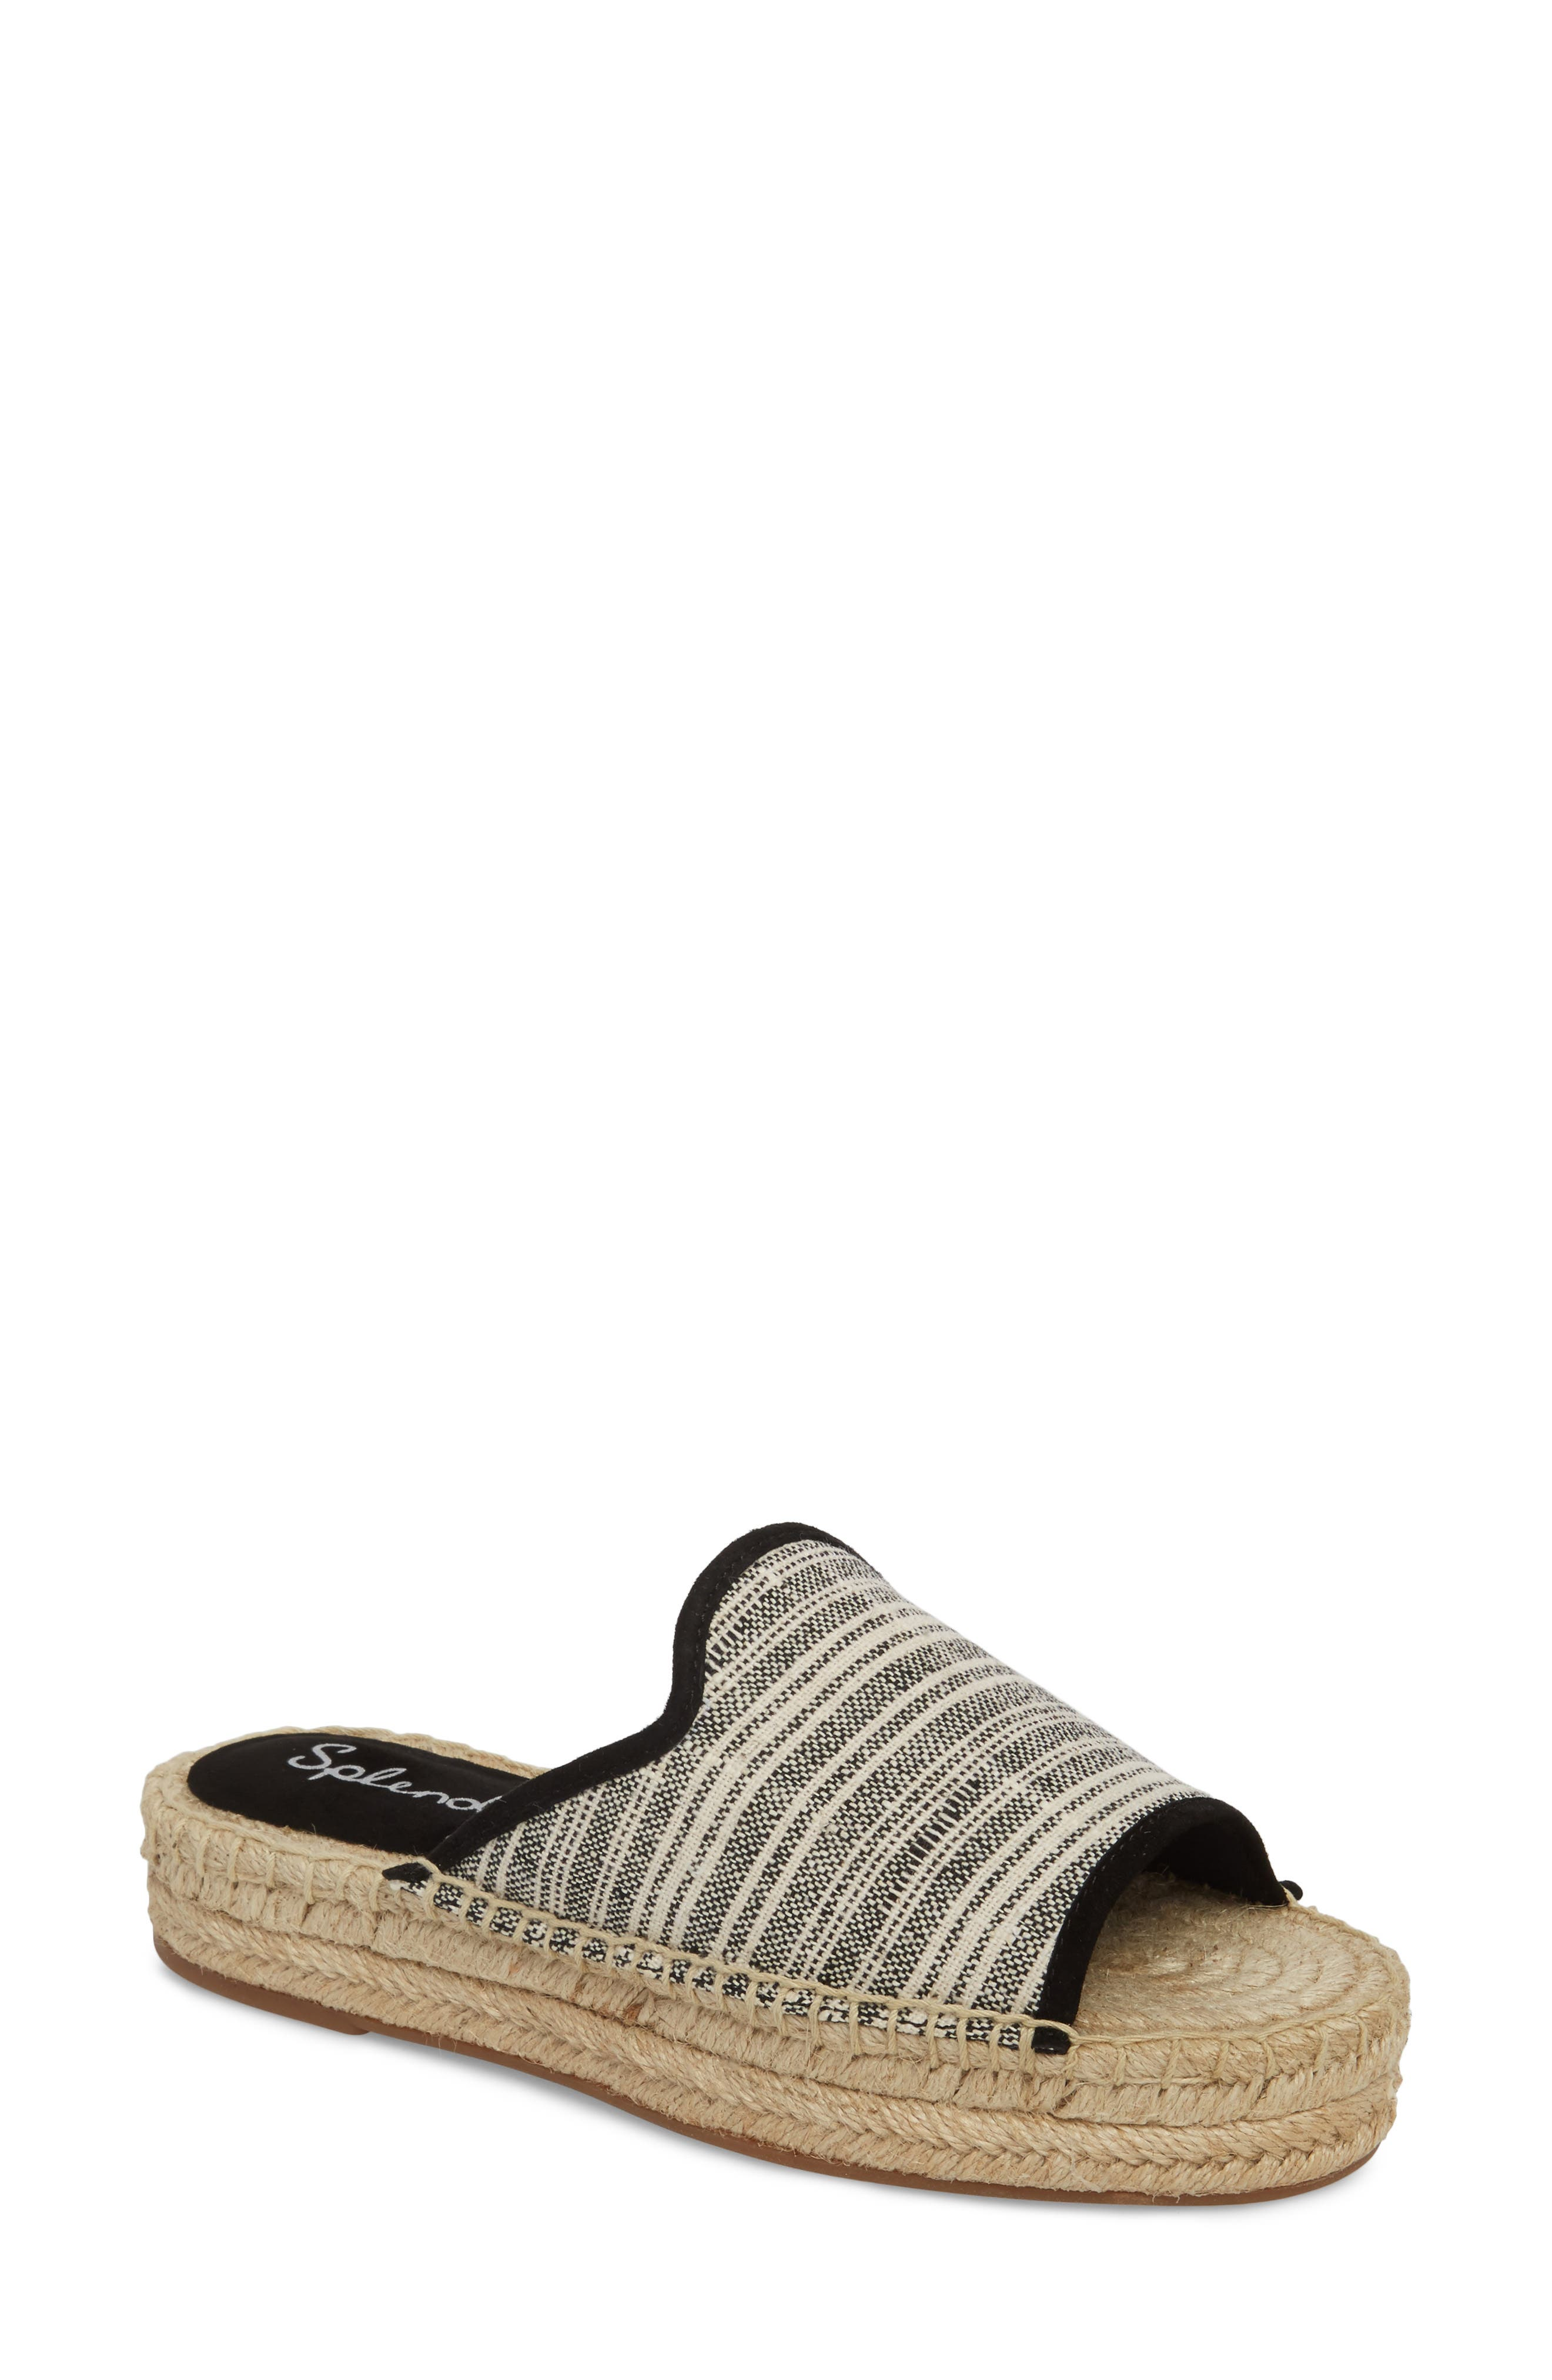 Franci Espadrille Slide Sandal,                             Main thumbnail 1, color,                             BLACK/ NATURAL FABRIC